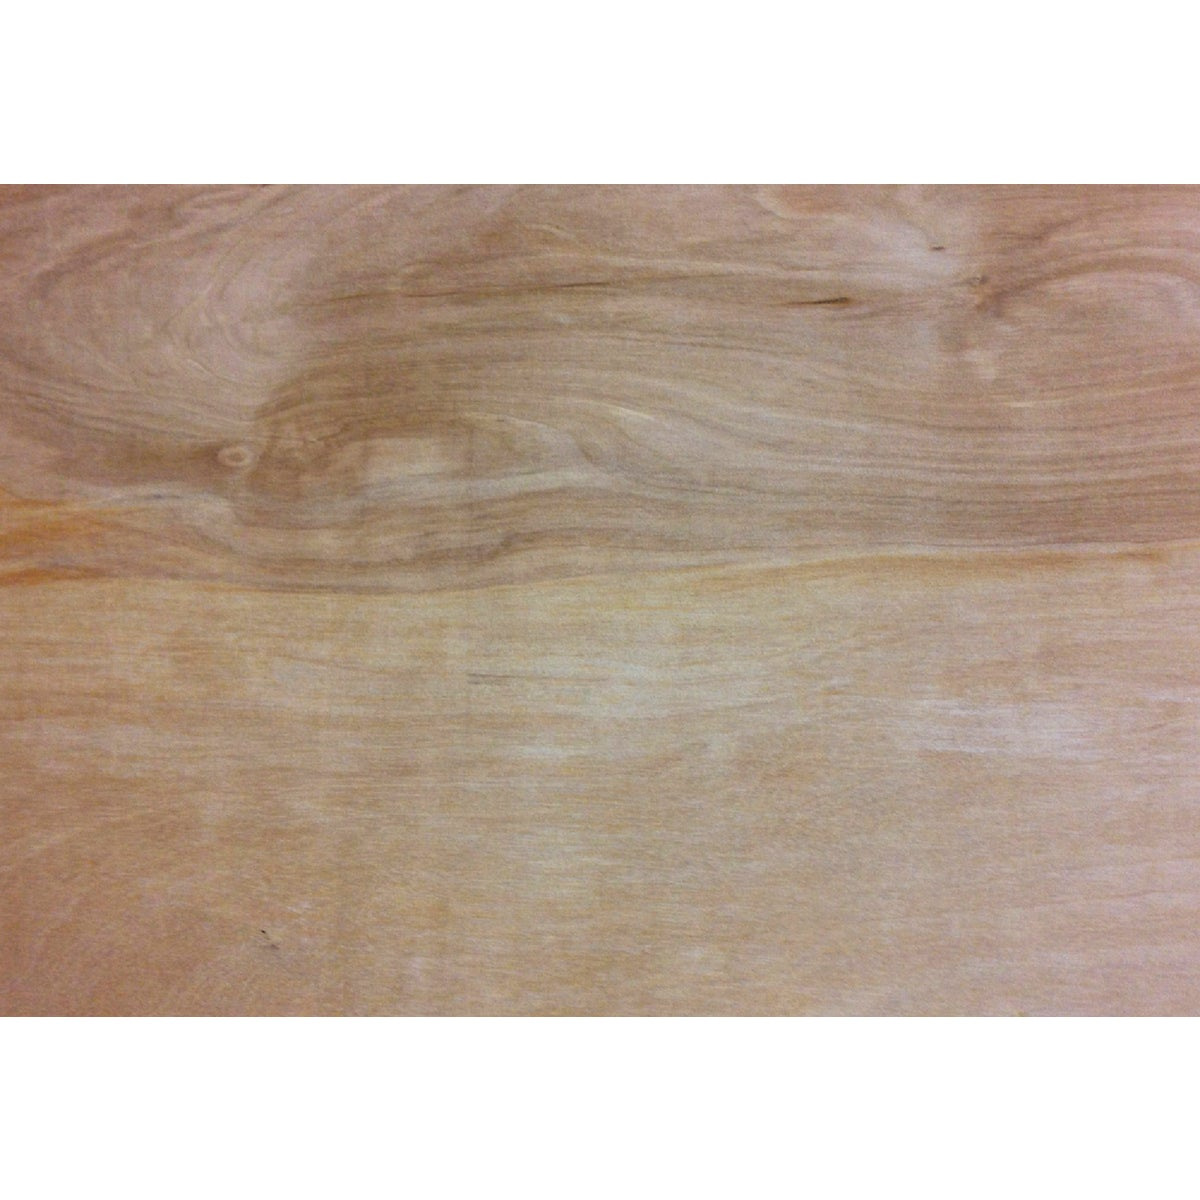 "1/2"" 24X24 BIRCH PLYWOOD - 114327 by Ufpi Lbr & Treated"